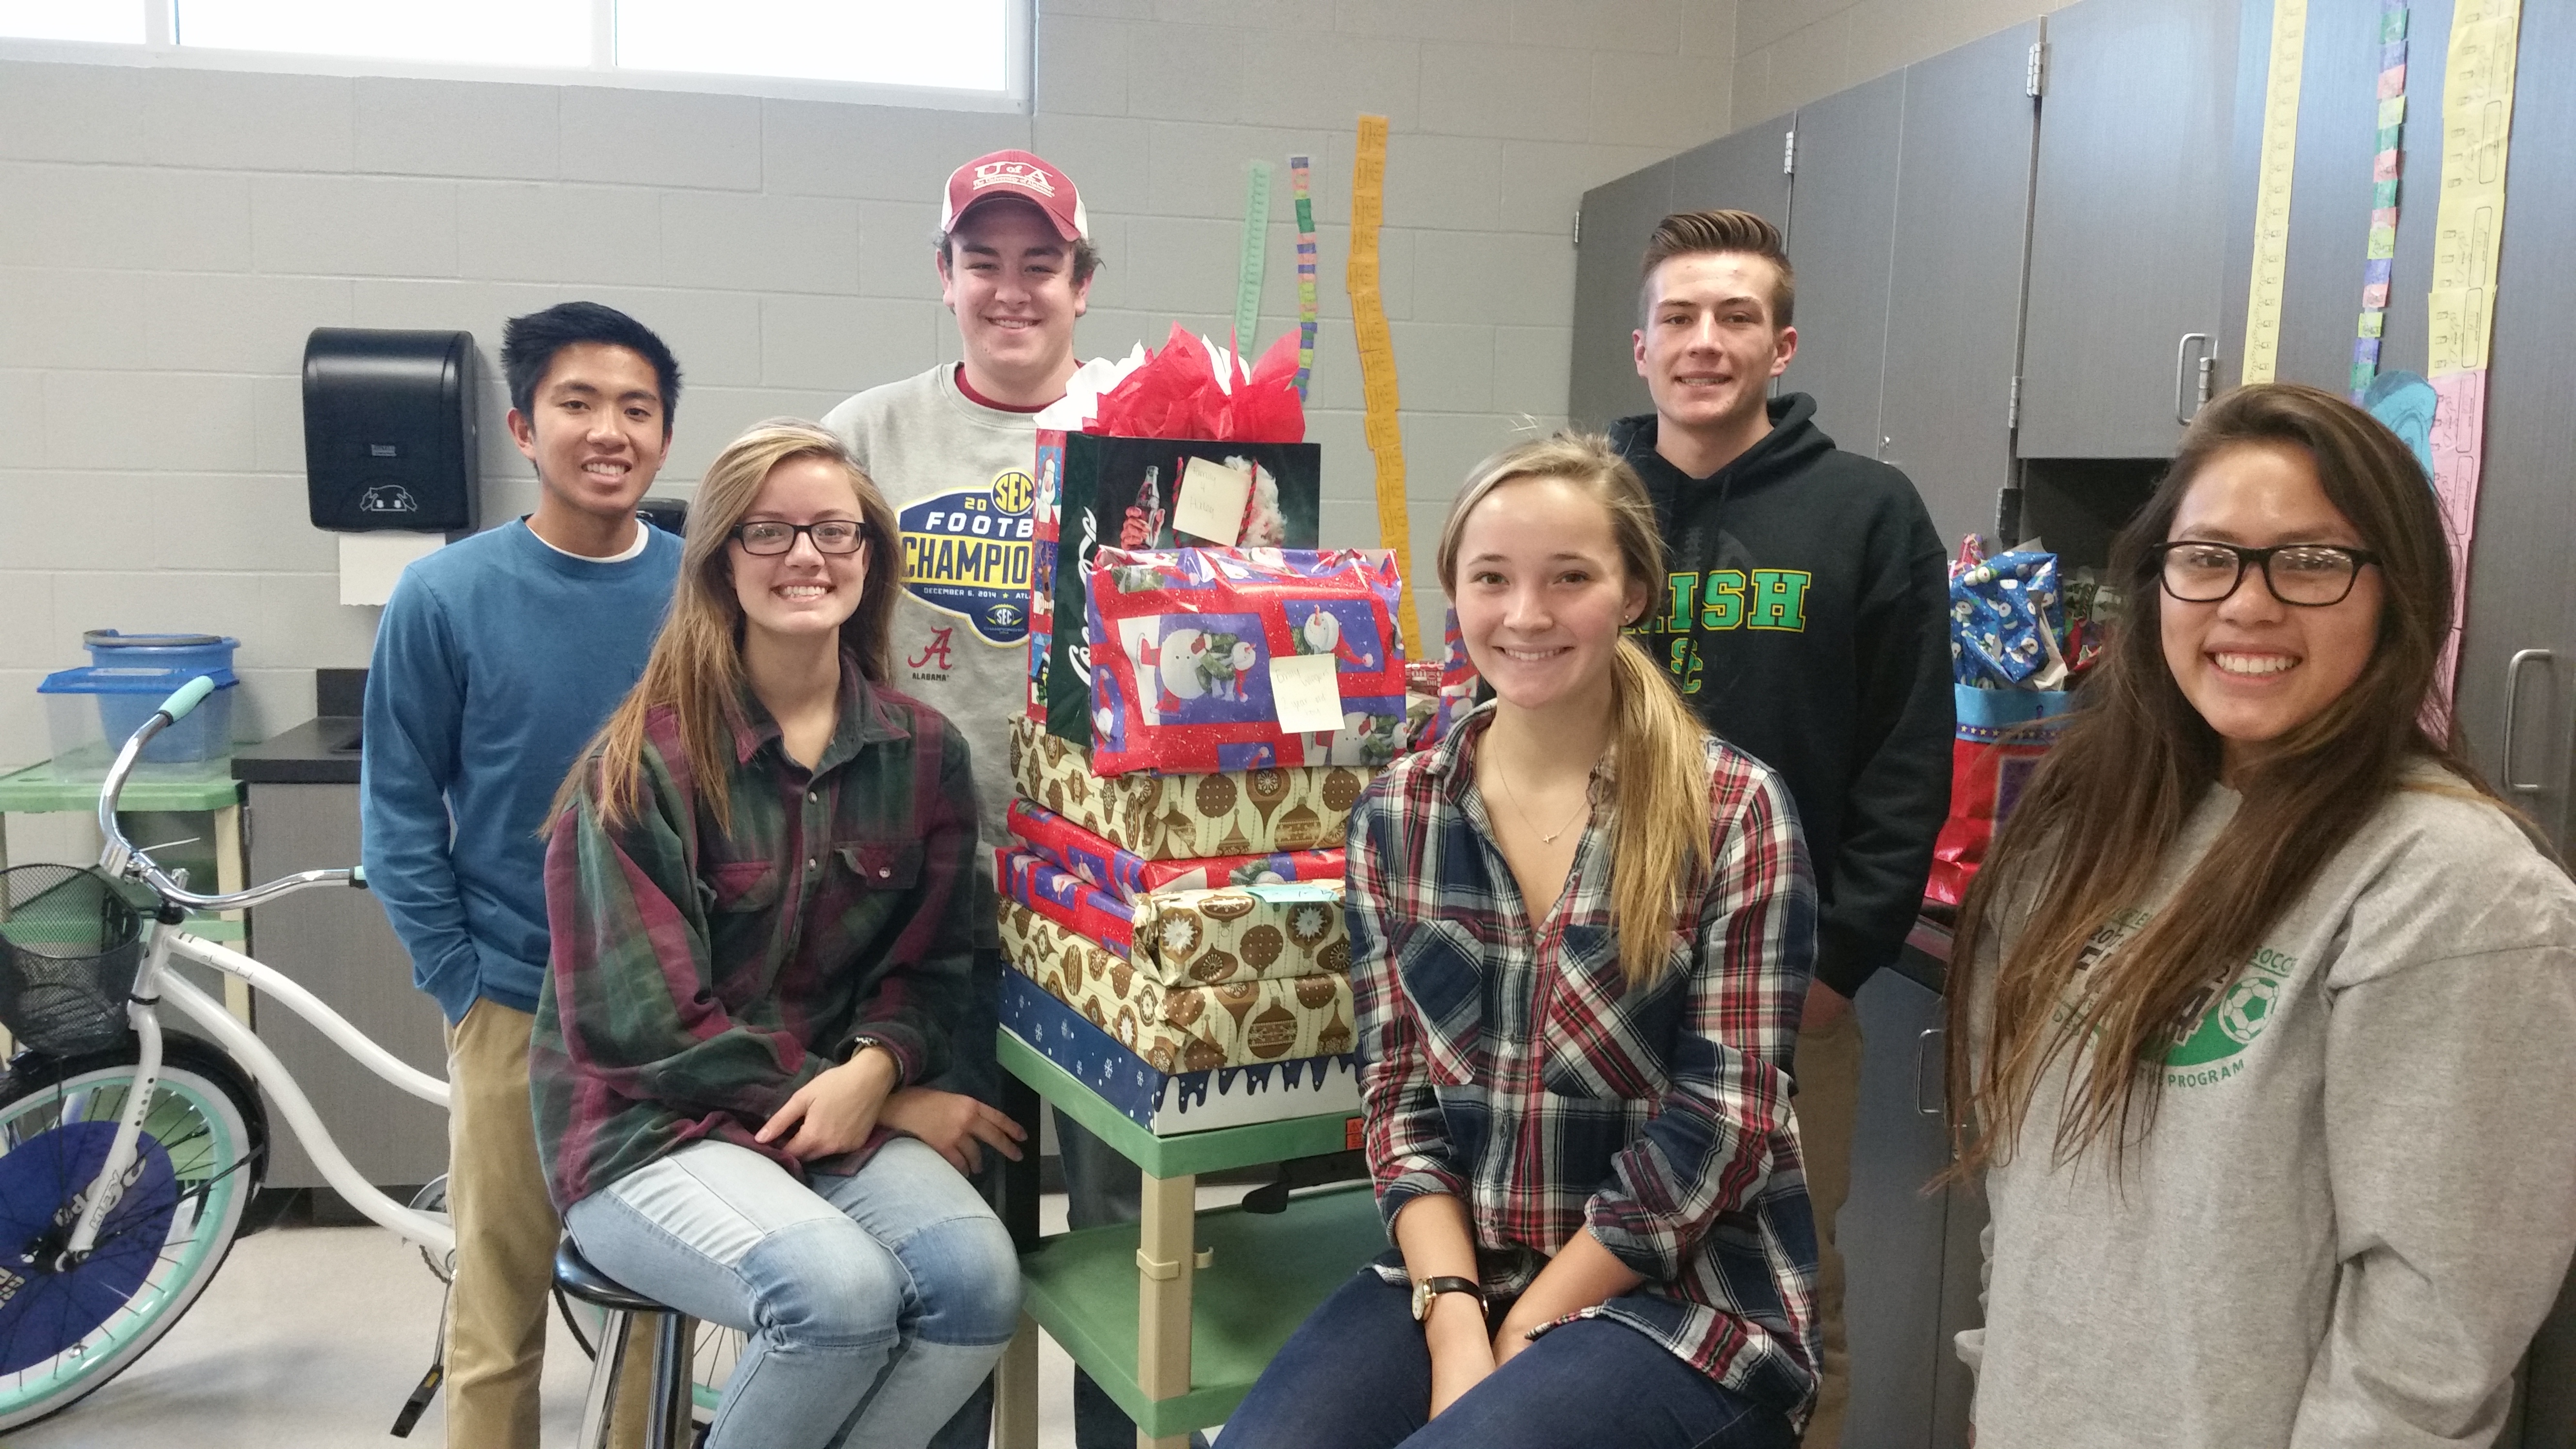 Students wrap gifts for families in need – DioSCG